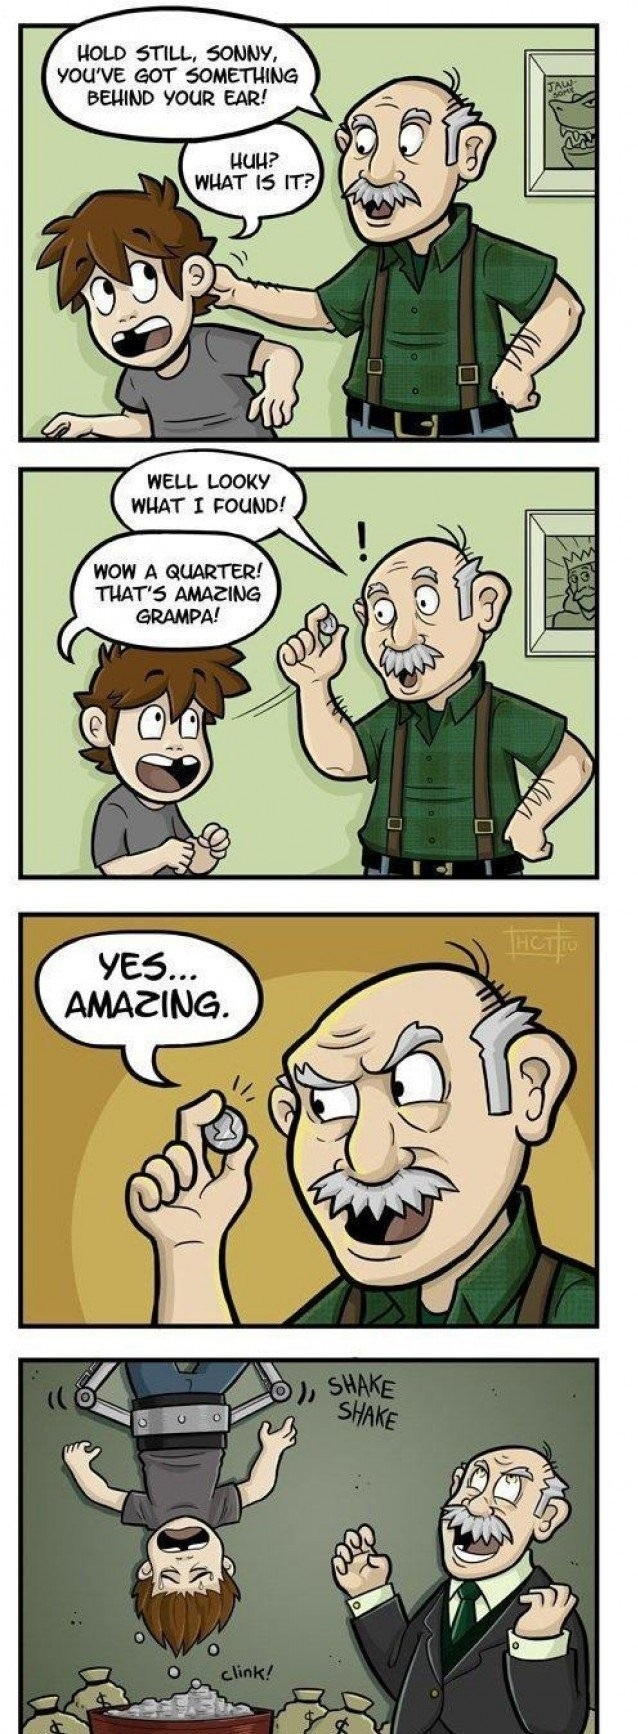 Coin machine Funny meme pictures, Funny comics, Funny